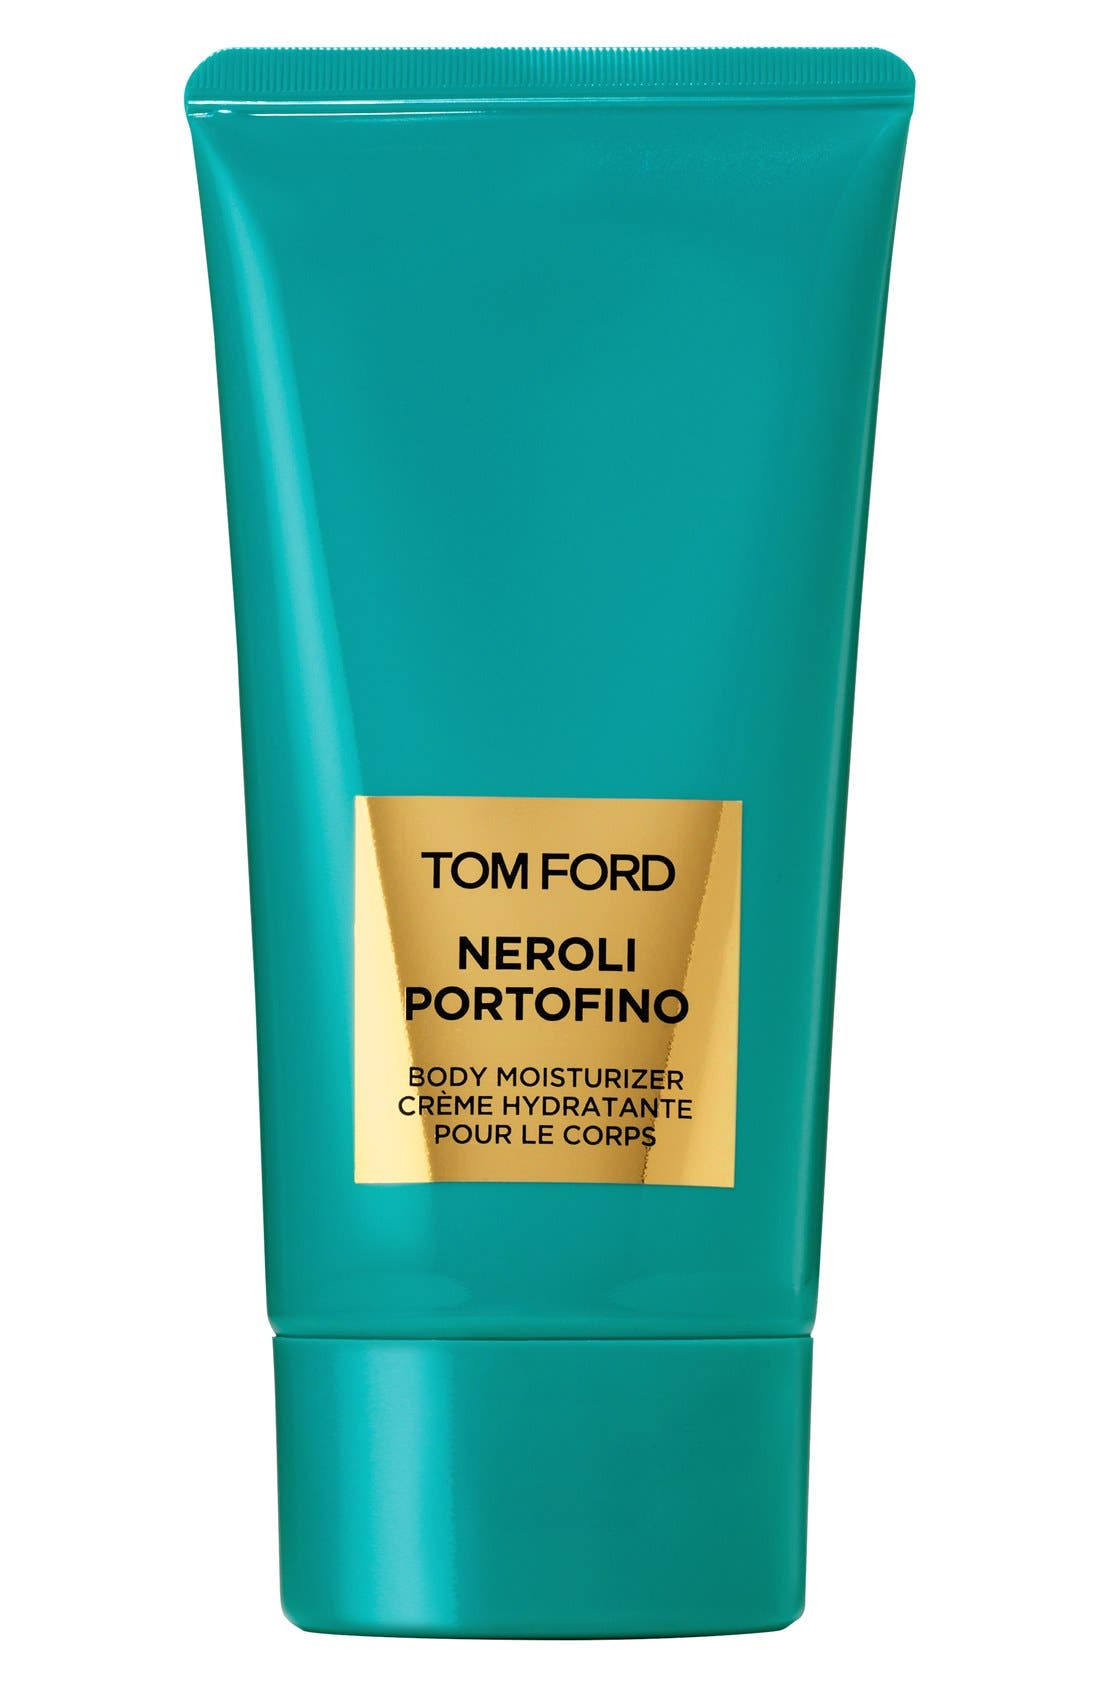 Tom Ford Private Blend 'Neroli Portofino' Body Moisturizer